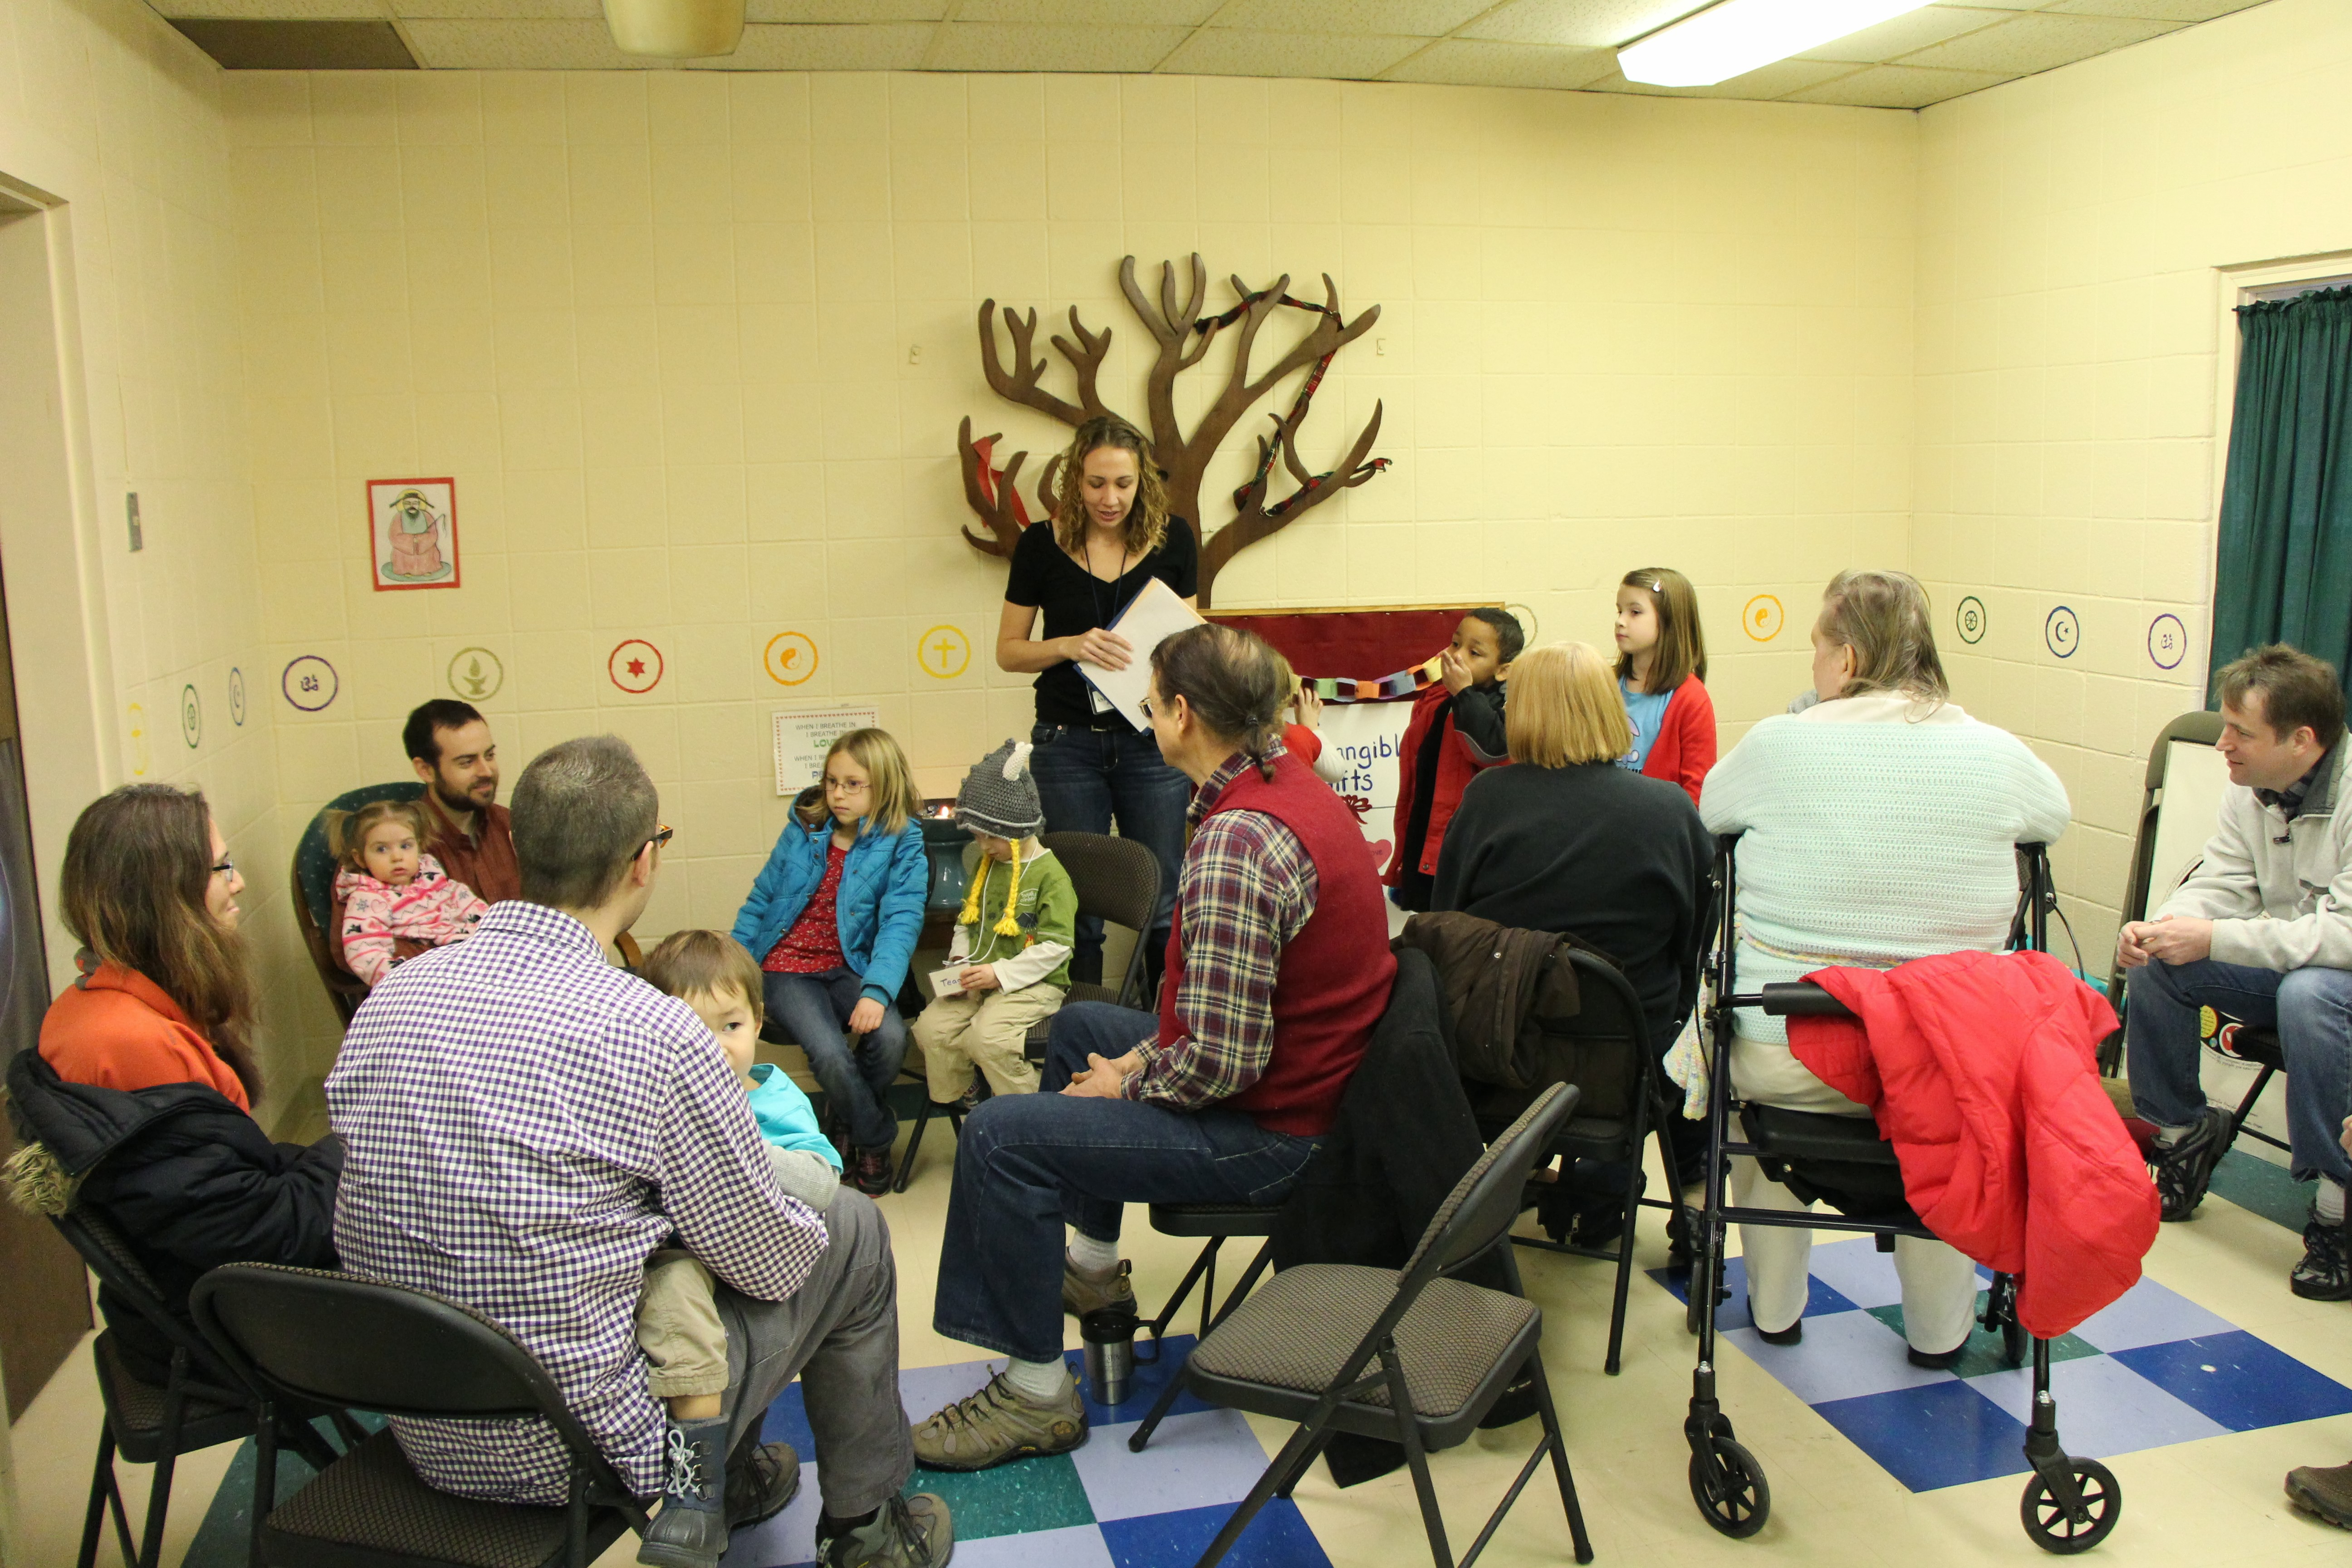 Youth and Adults - IMG_2785.JPG